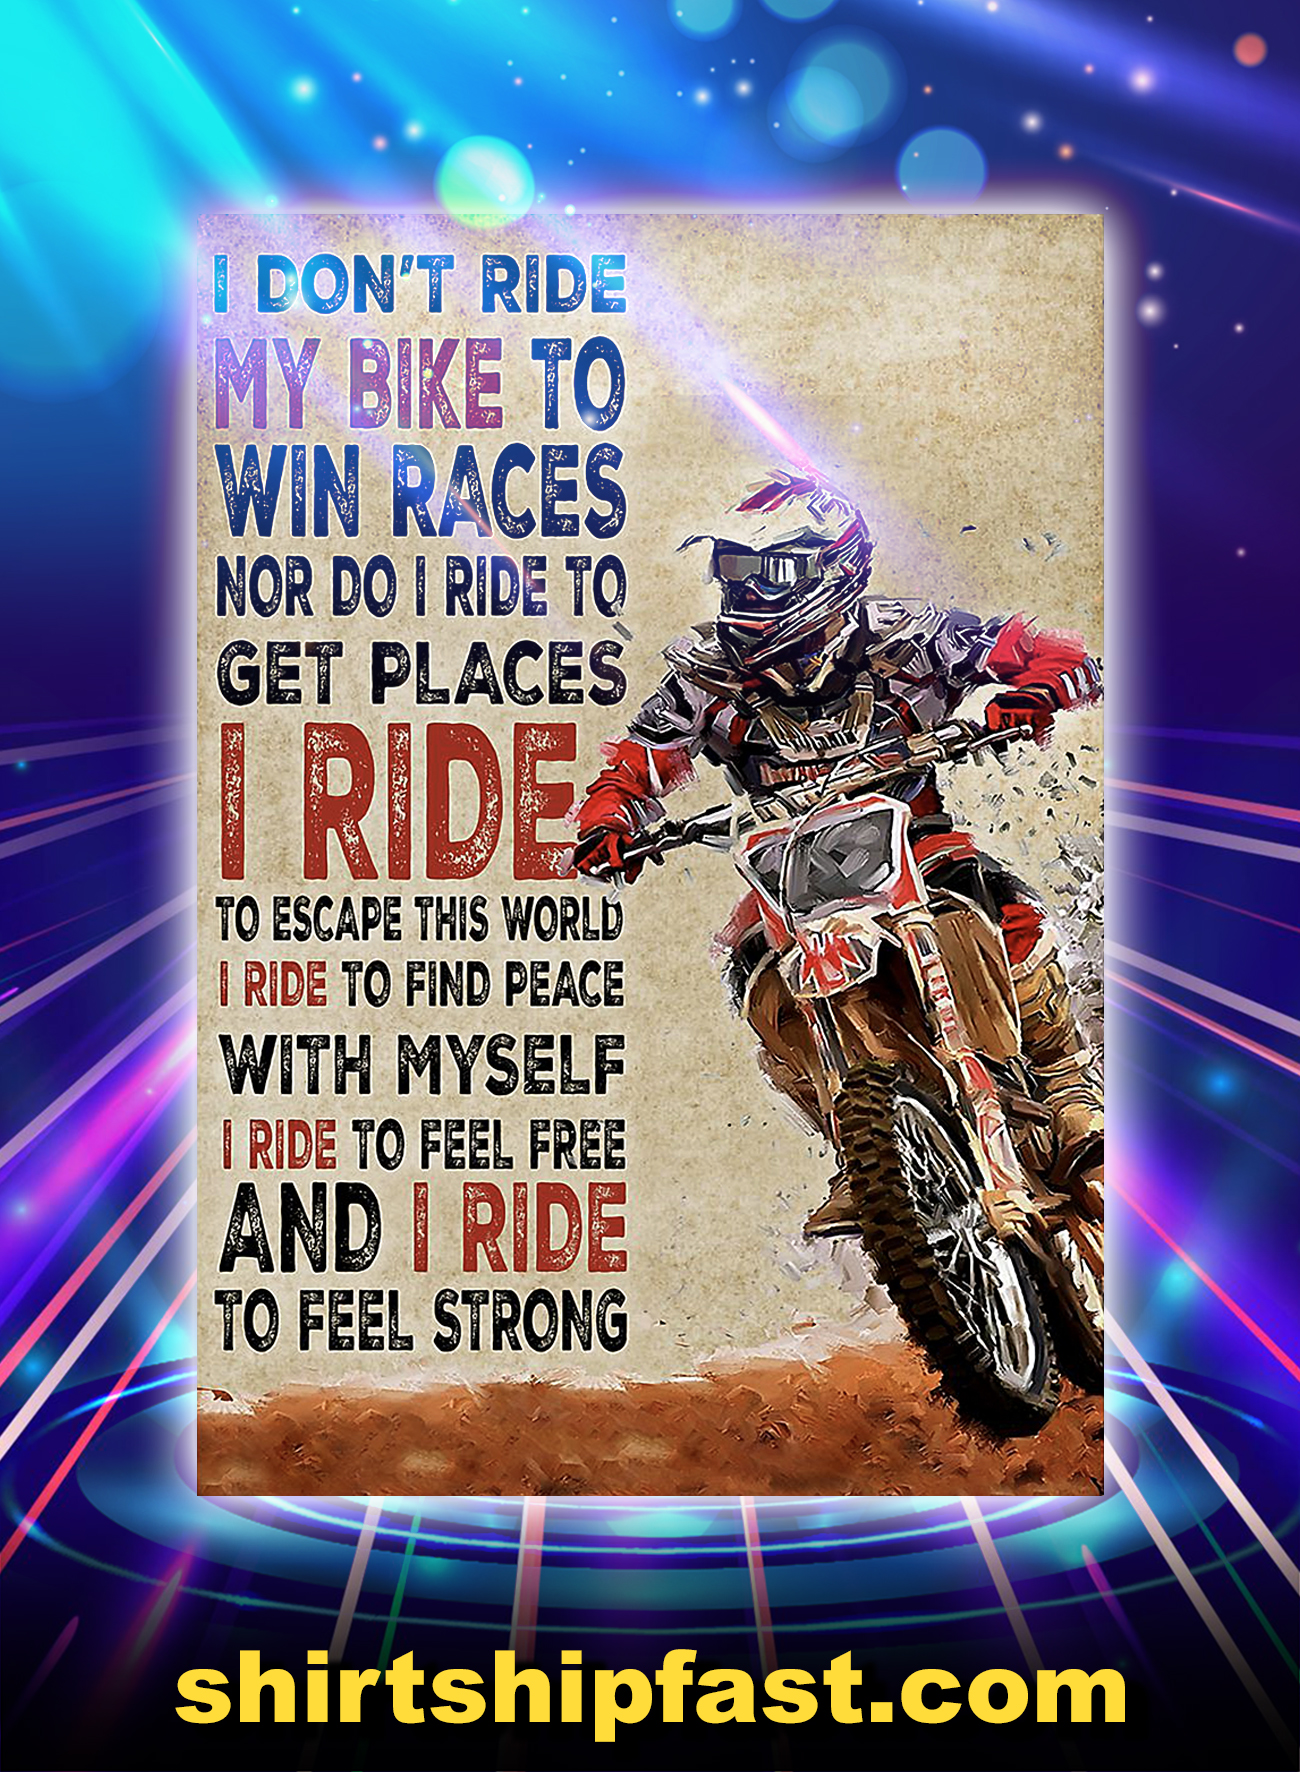 Motorcycle i don't ride my bike to win races poster - A4